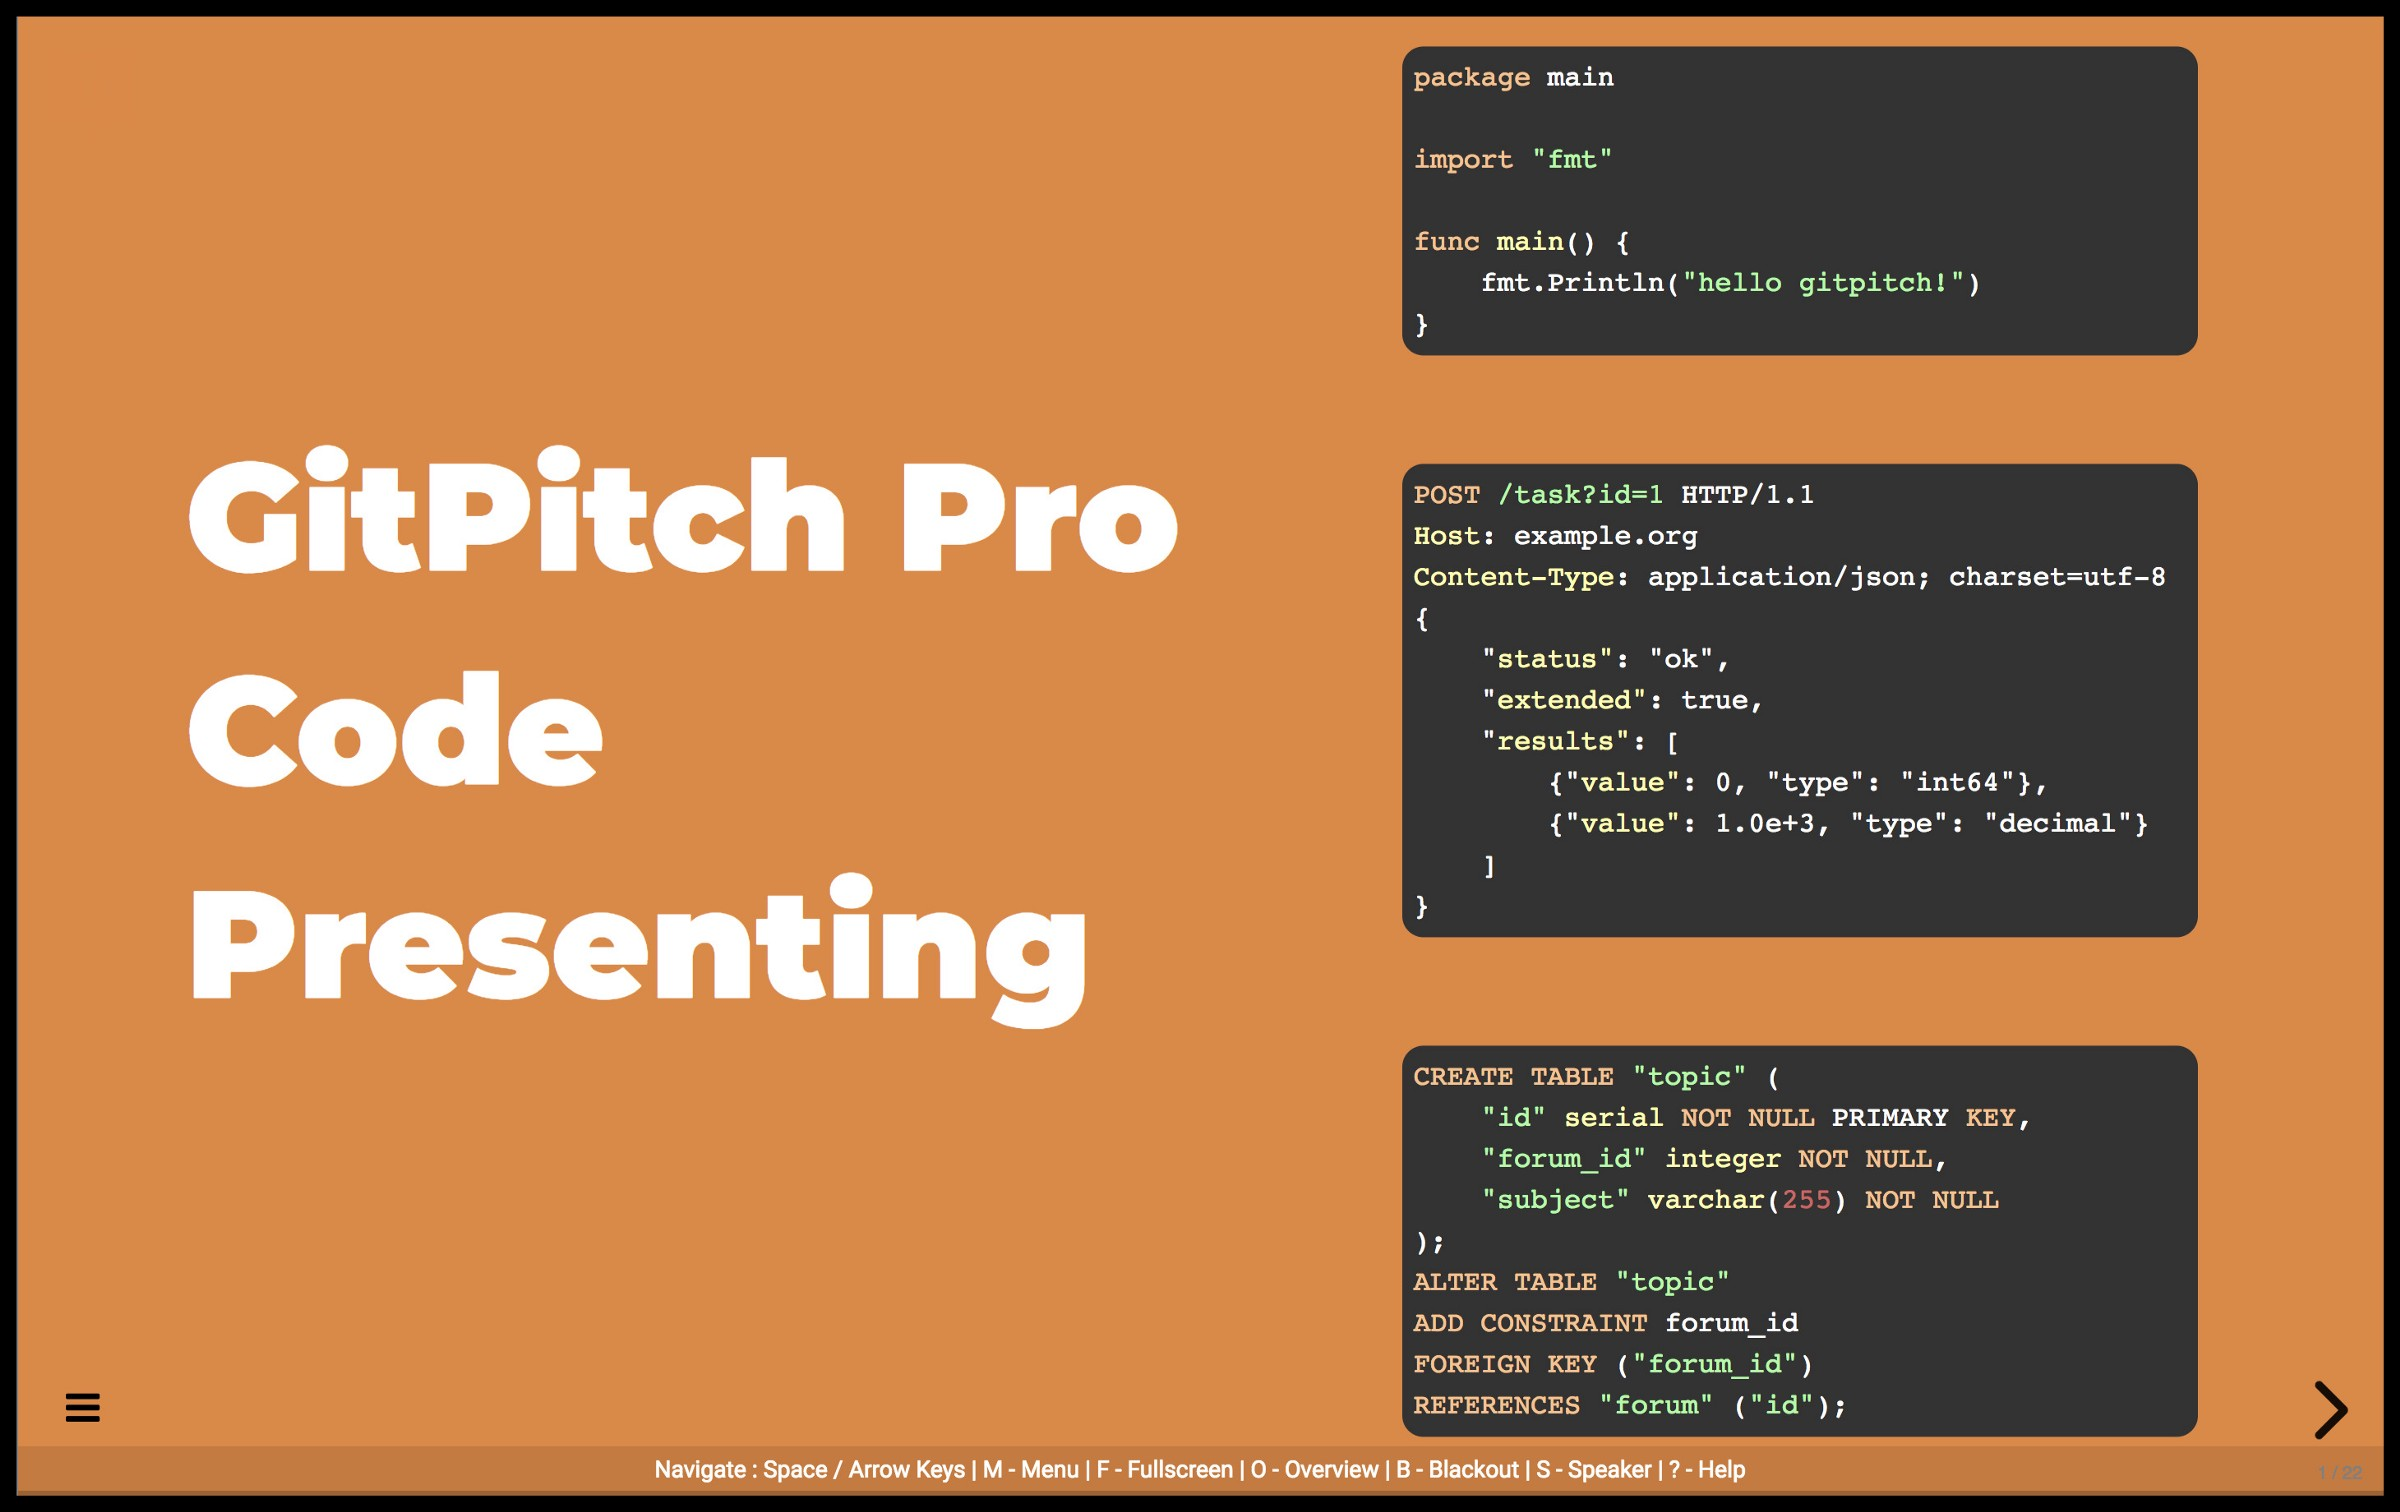 GitPitch adds CODE ZOOM for Slide Decks - By David Russell